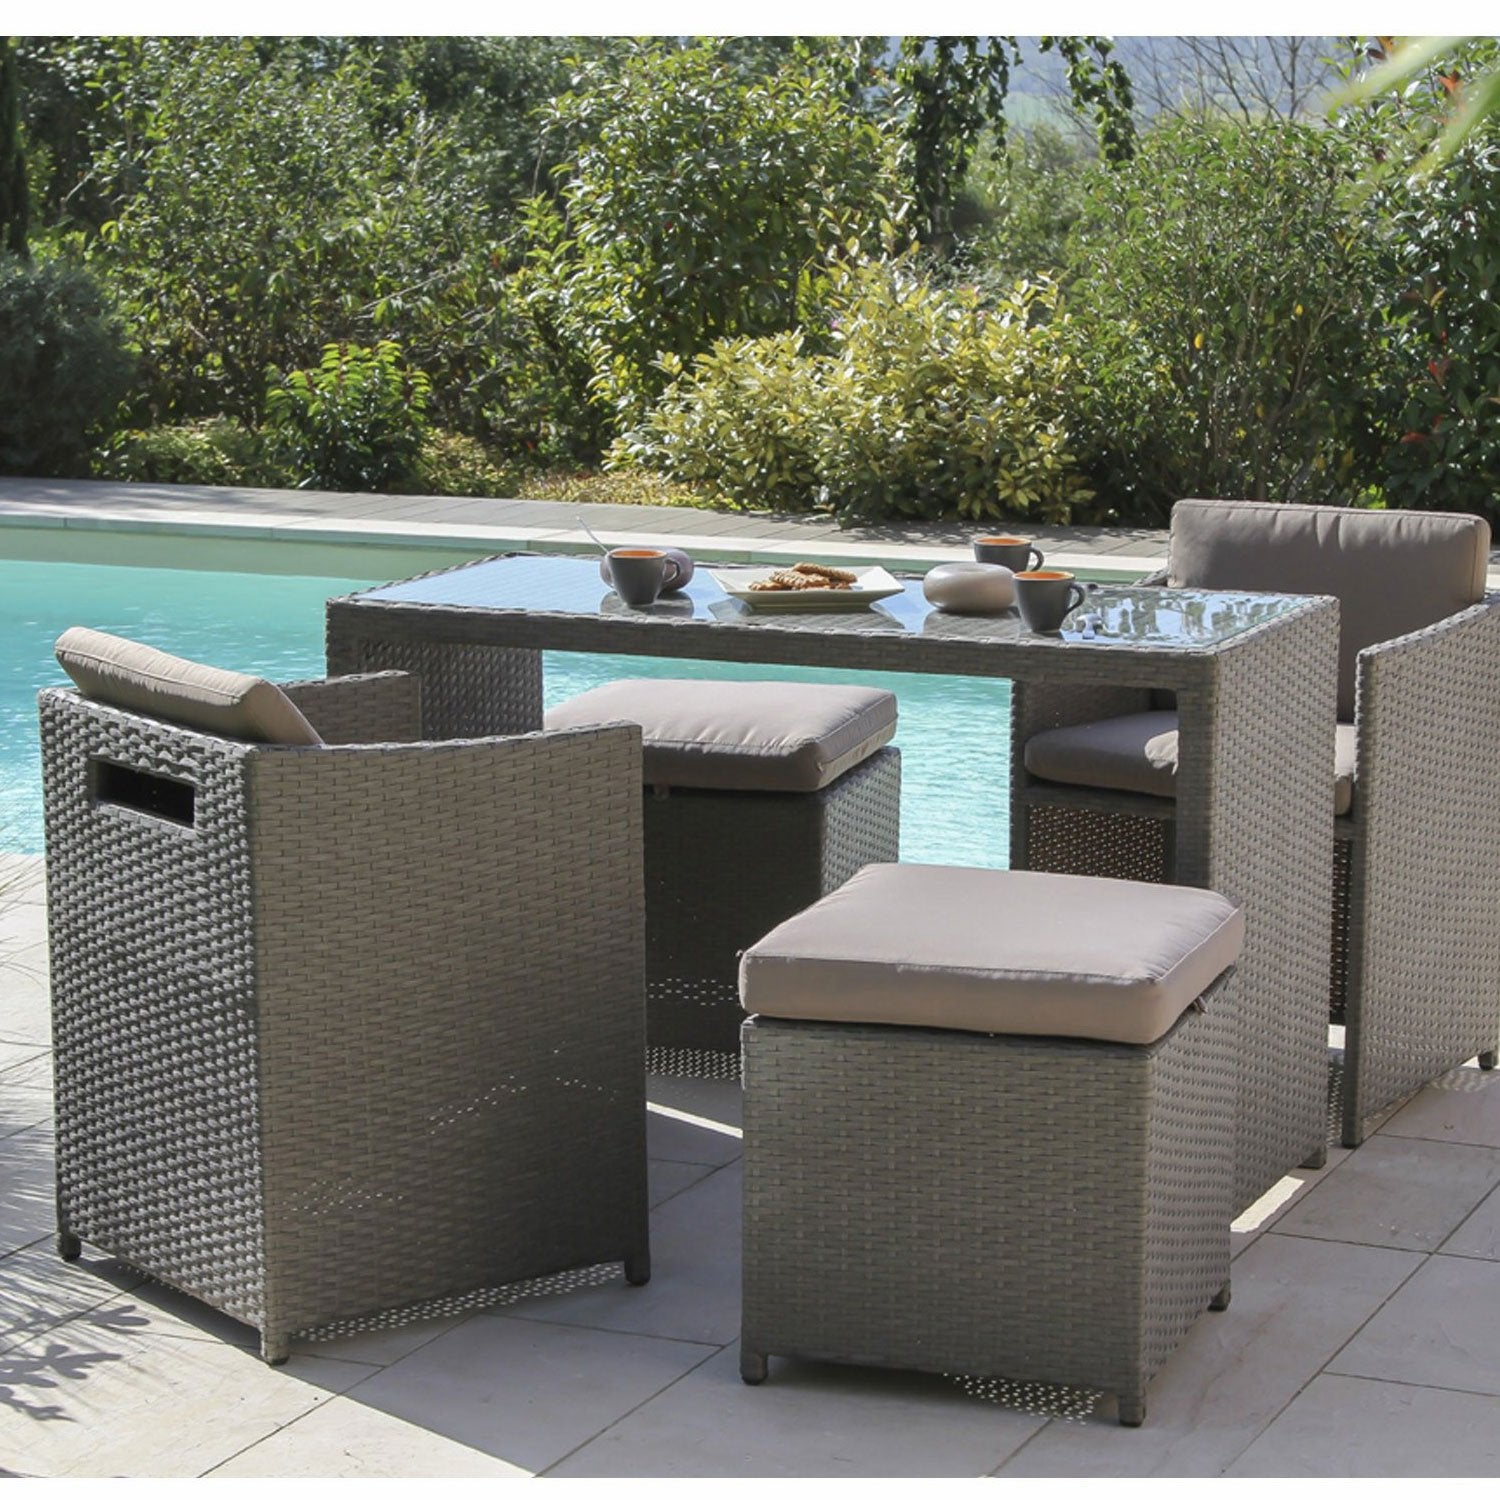 Salon de jardin foggia r sine tress e gris 1 table 2 fauteuils 2 tabourets - Leroy merlin salon jardin ...